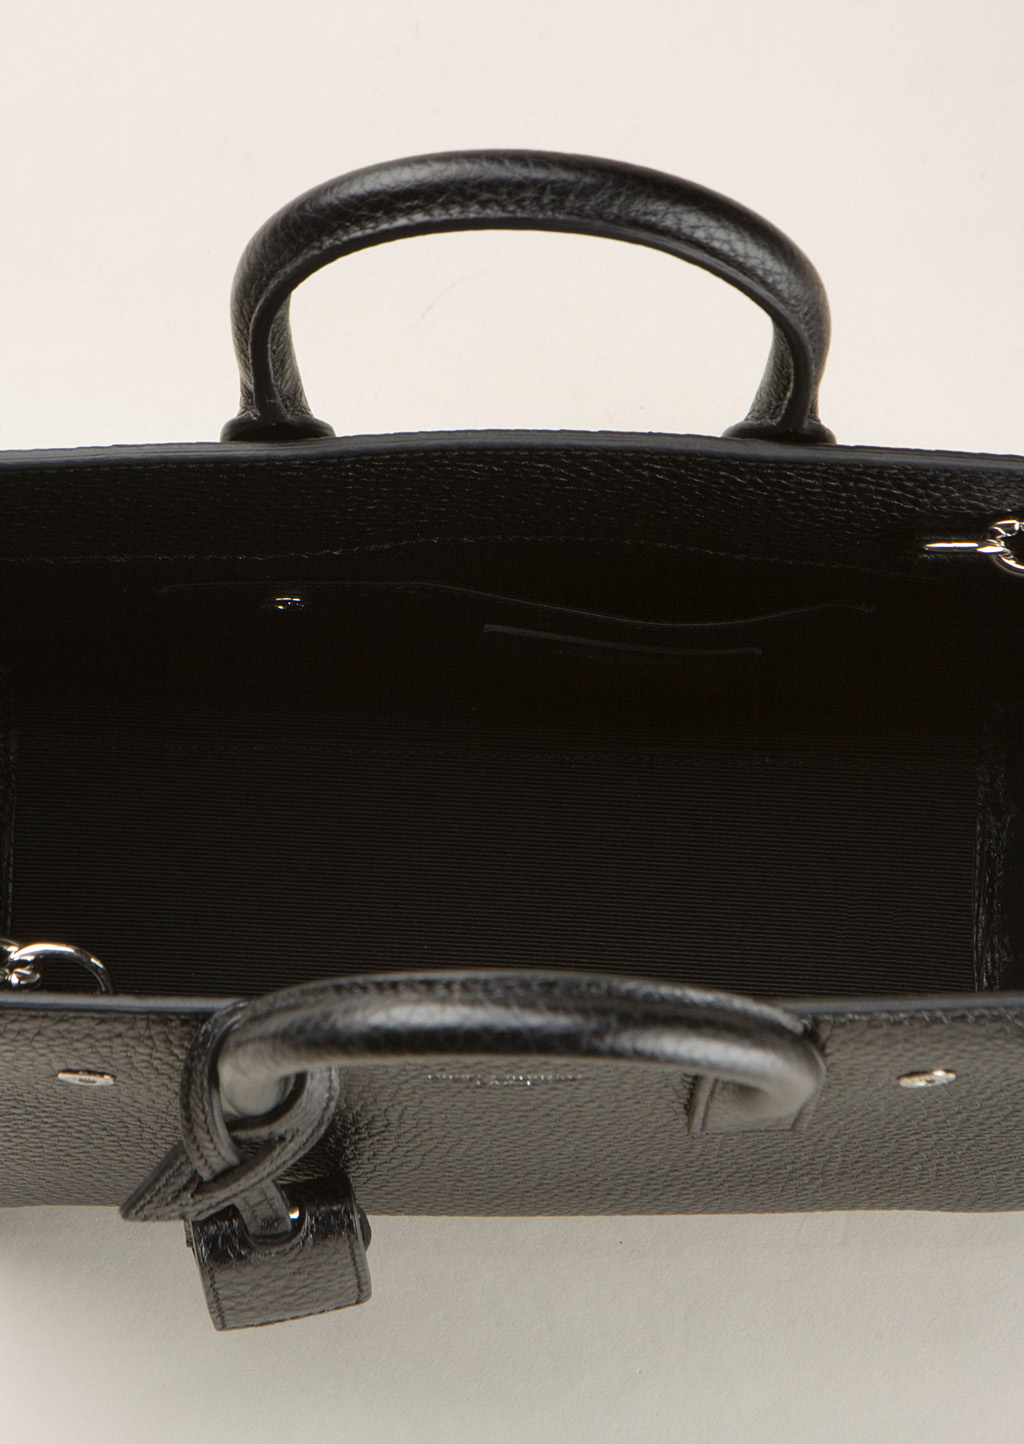 Classic Nano Sac De Jour Bag In Fog Leather